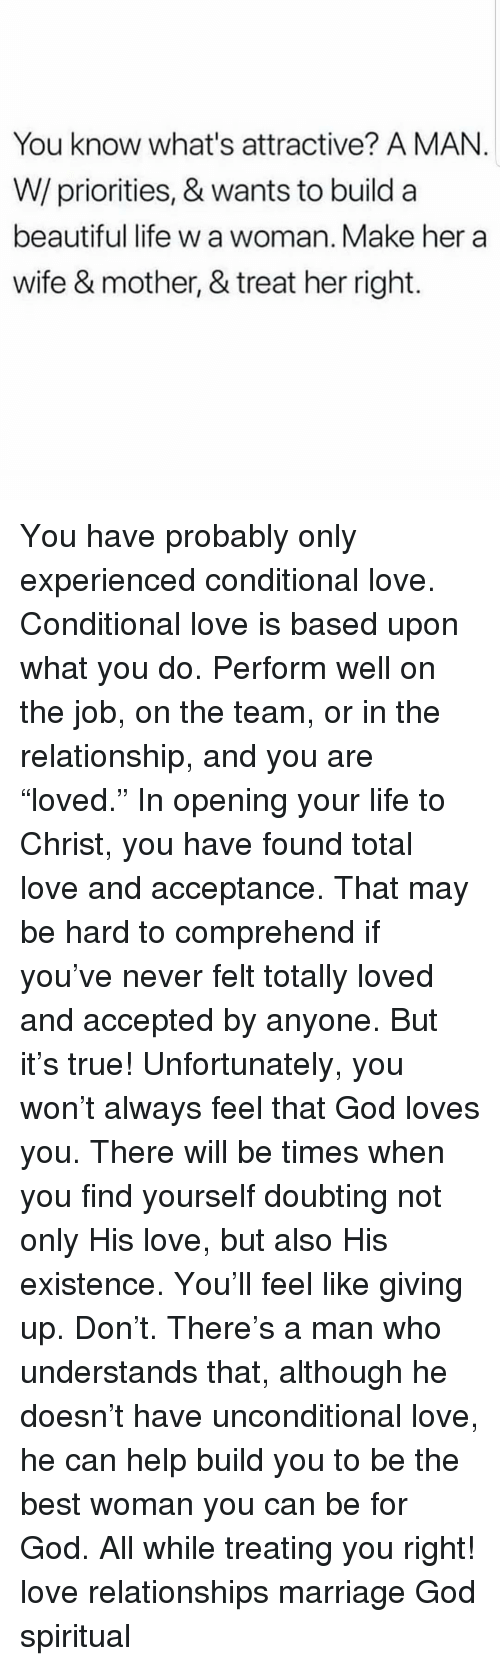 """Treat Her Right: You know what's attractive? A MAN.  W/priorities, & wants to build a  beautiful life w a woman. Make her a  wife & mother, & treat her right. You have probably only experienced conditional love. Conditional love is based upon what you do. Perform well on the job, on the team, or in the relationship, and you are """"loved."""" In opening your life to Christ, you have found total love and acceptance. That may be hard to comprehend if you've never felt totally loved and accepted by anyone. But it's true! Unfortunately, you won't always feel that God loves you. There will be times when you find yourself doubting not only His love, but also His existence. You'll feel like giving up. Don't. There's a man who understands that, although he doesn't have unconditional love, he can help build you to be the best woman you can be for God. All while treating you right! love relationships marriage God spiritual"""